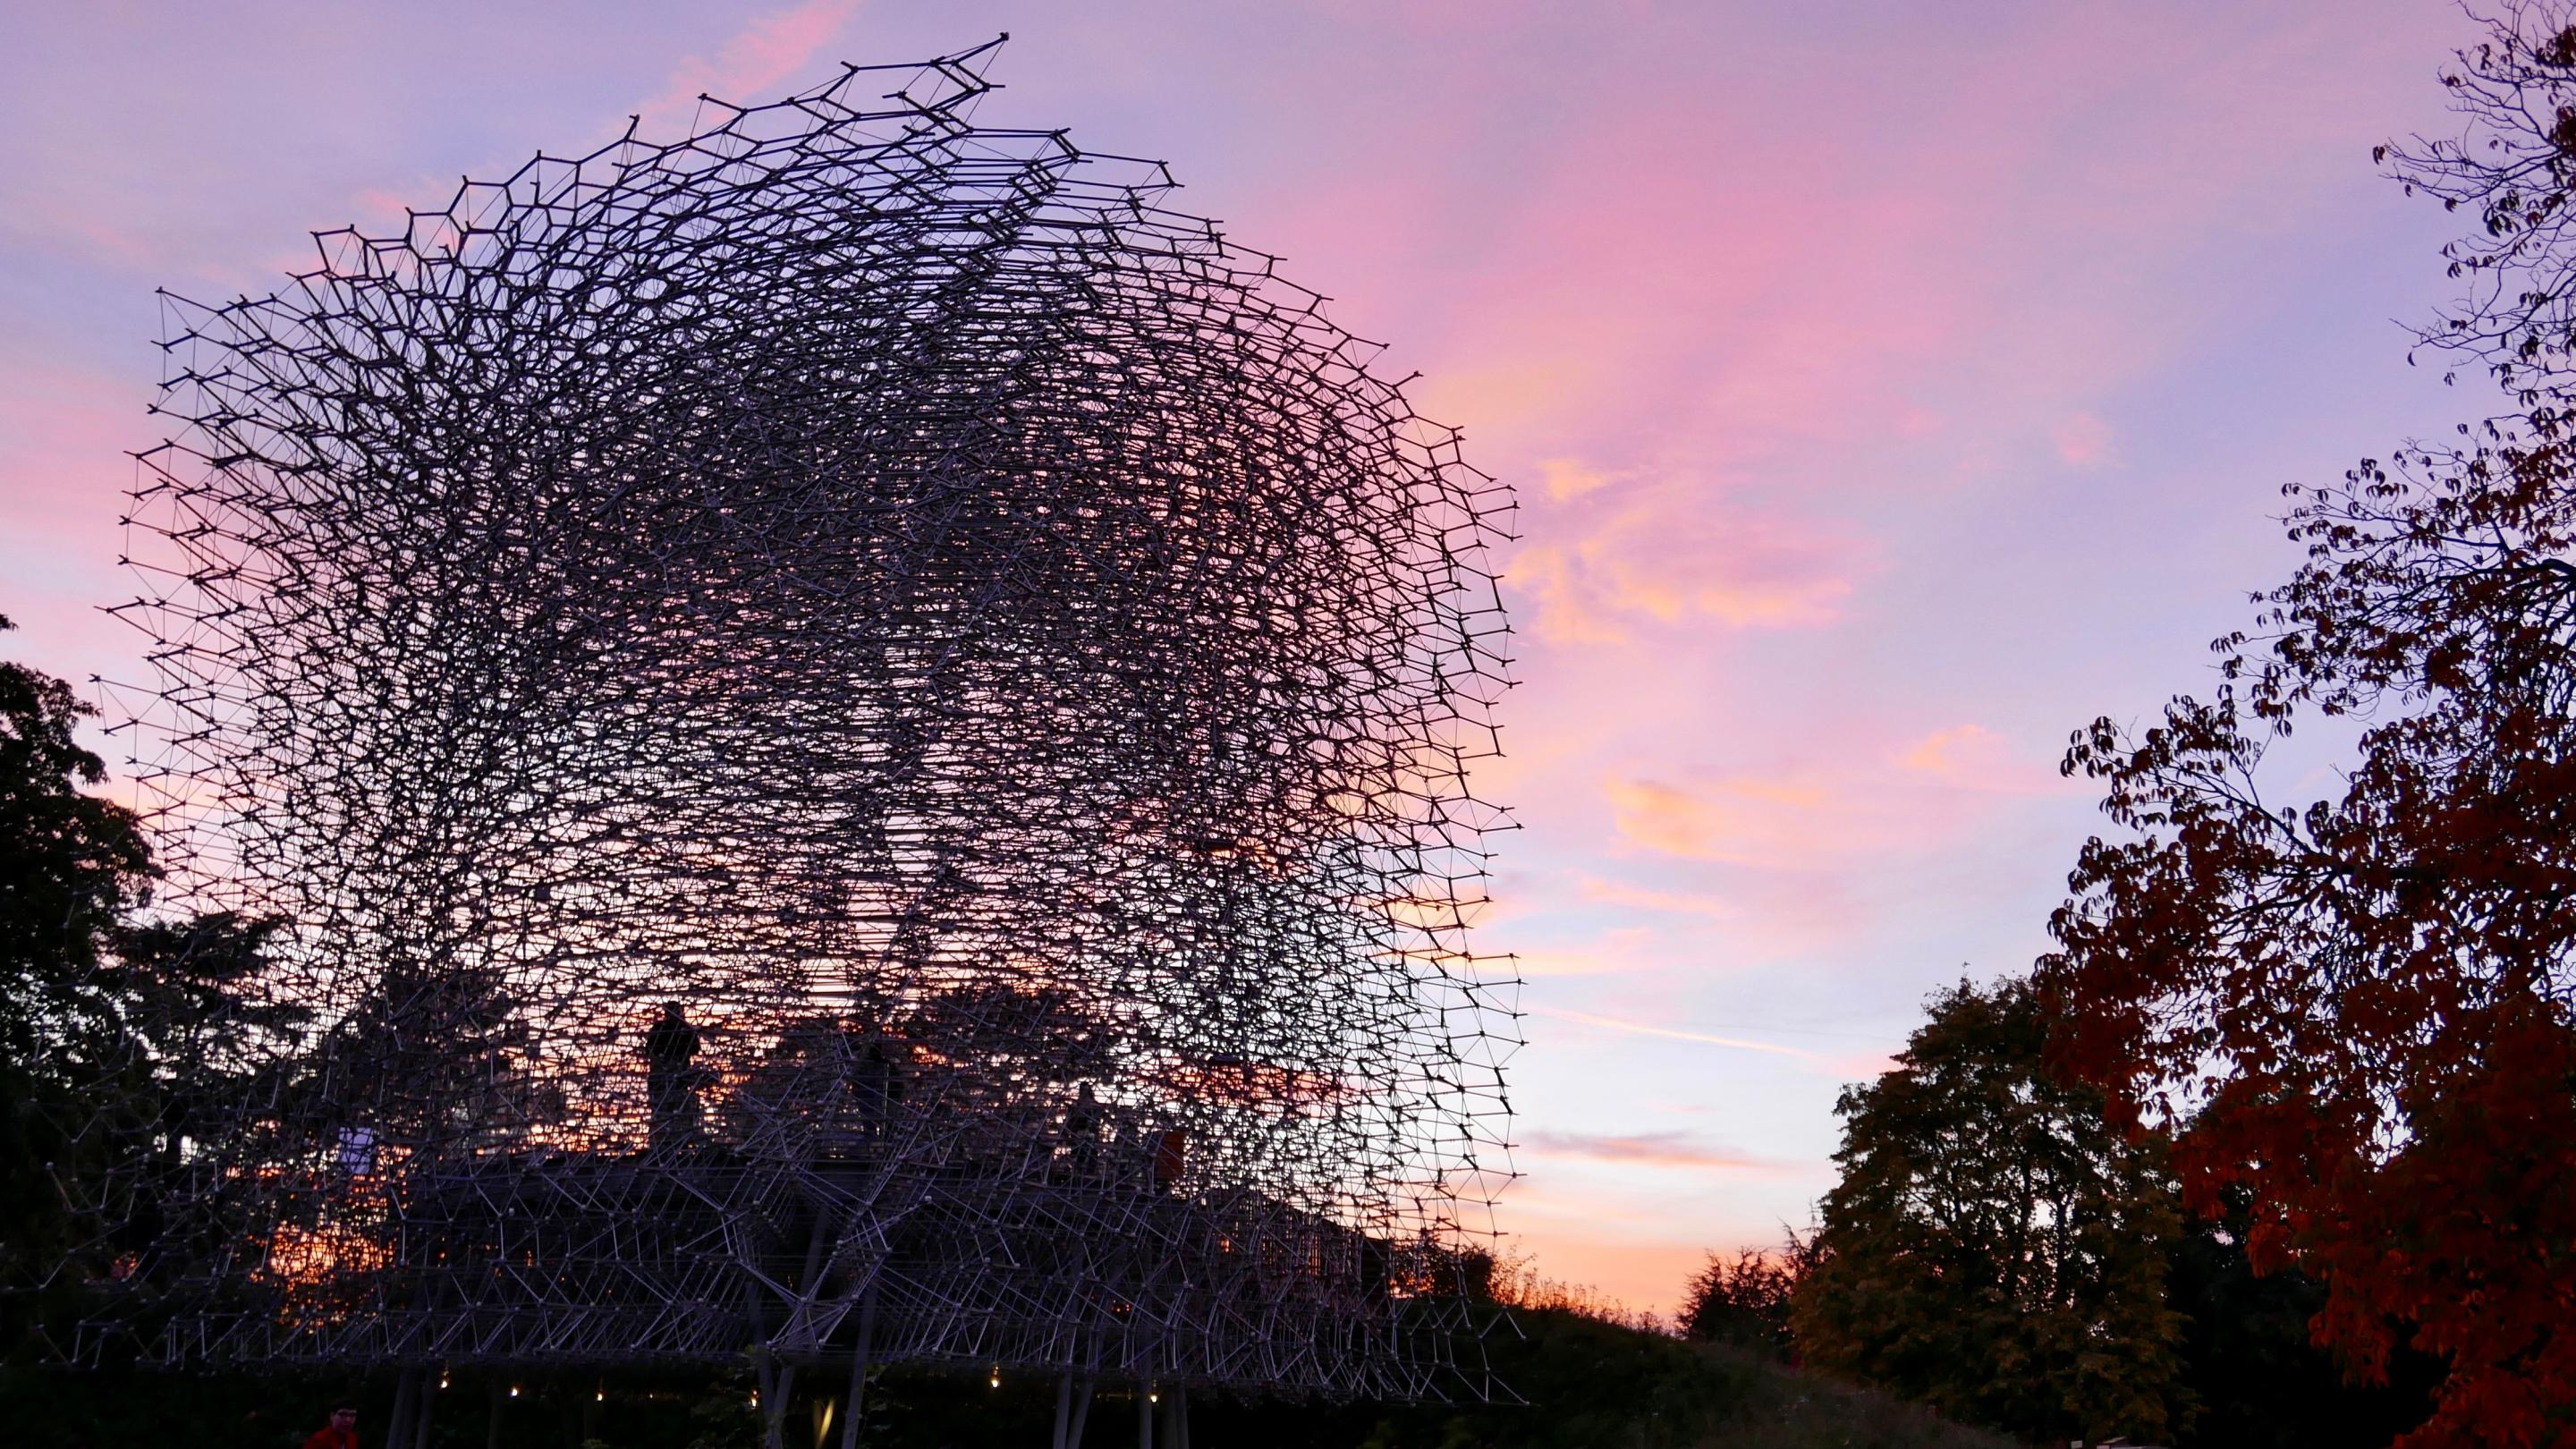 The Hive at sunset